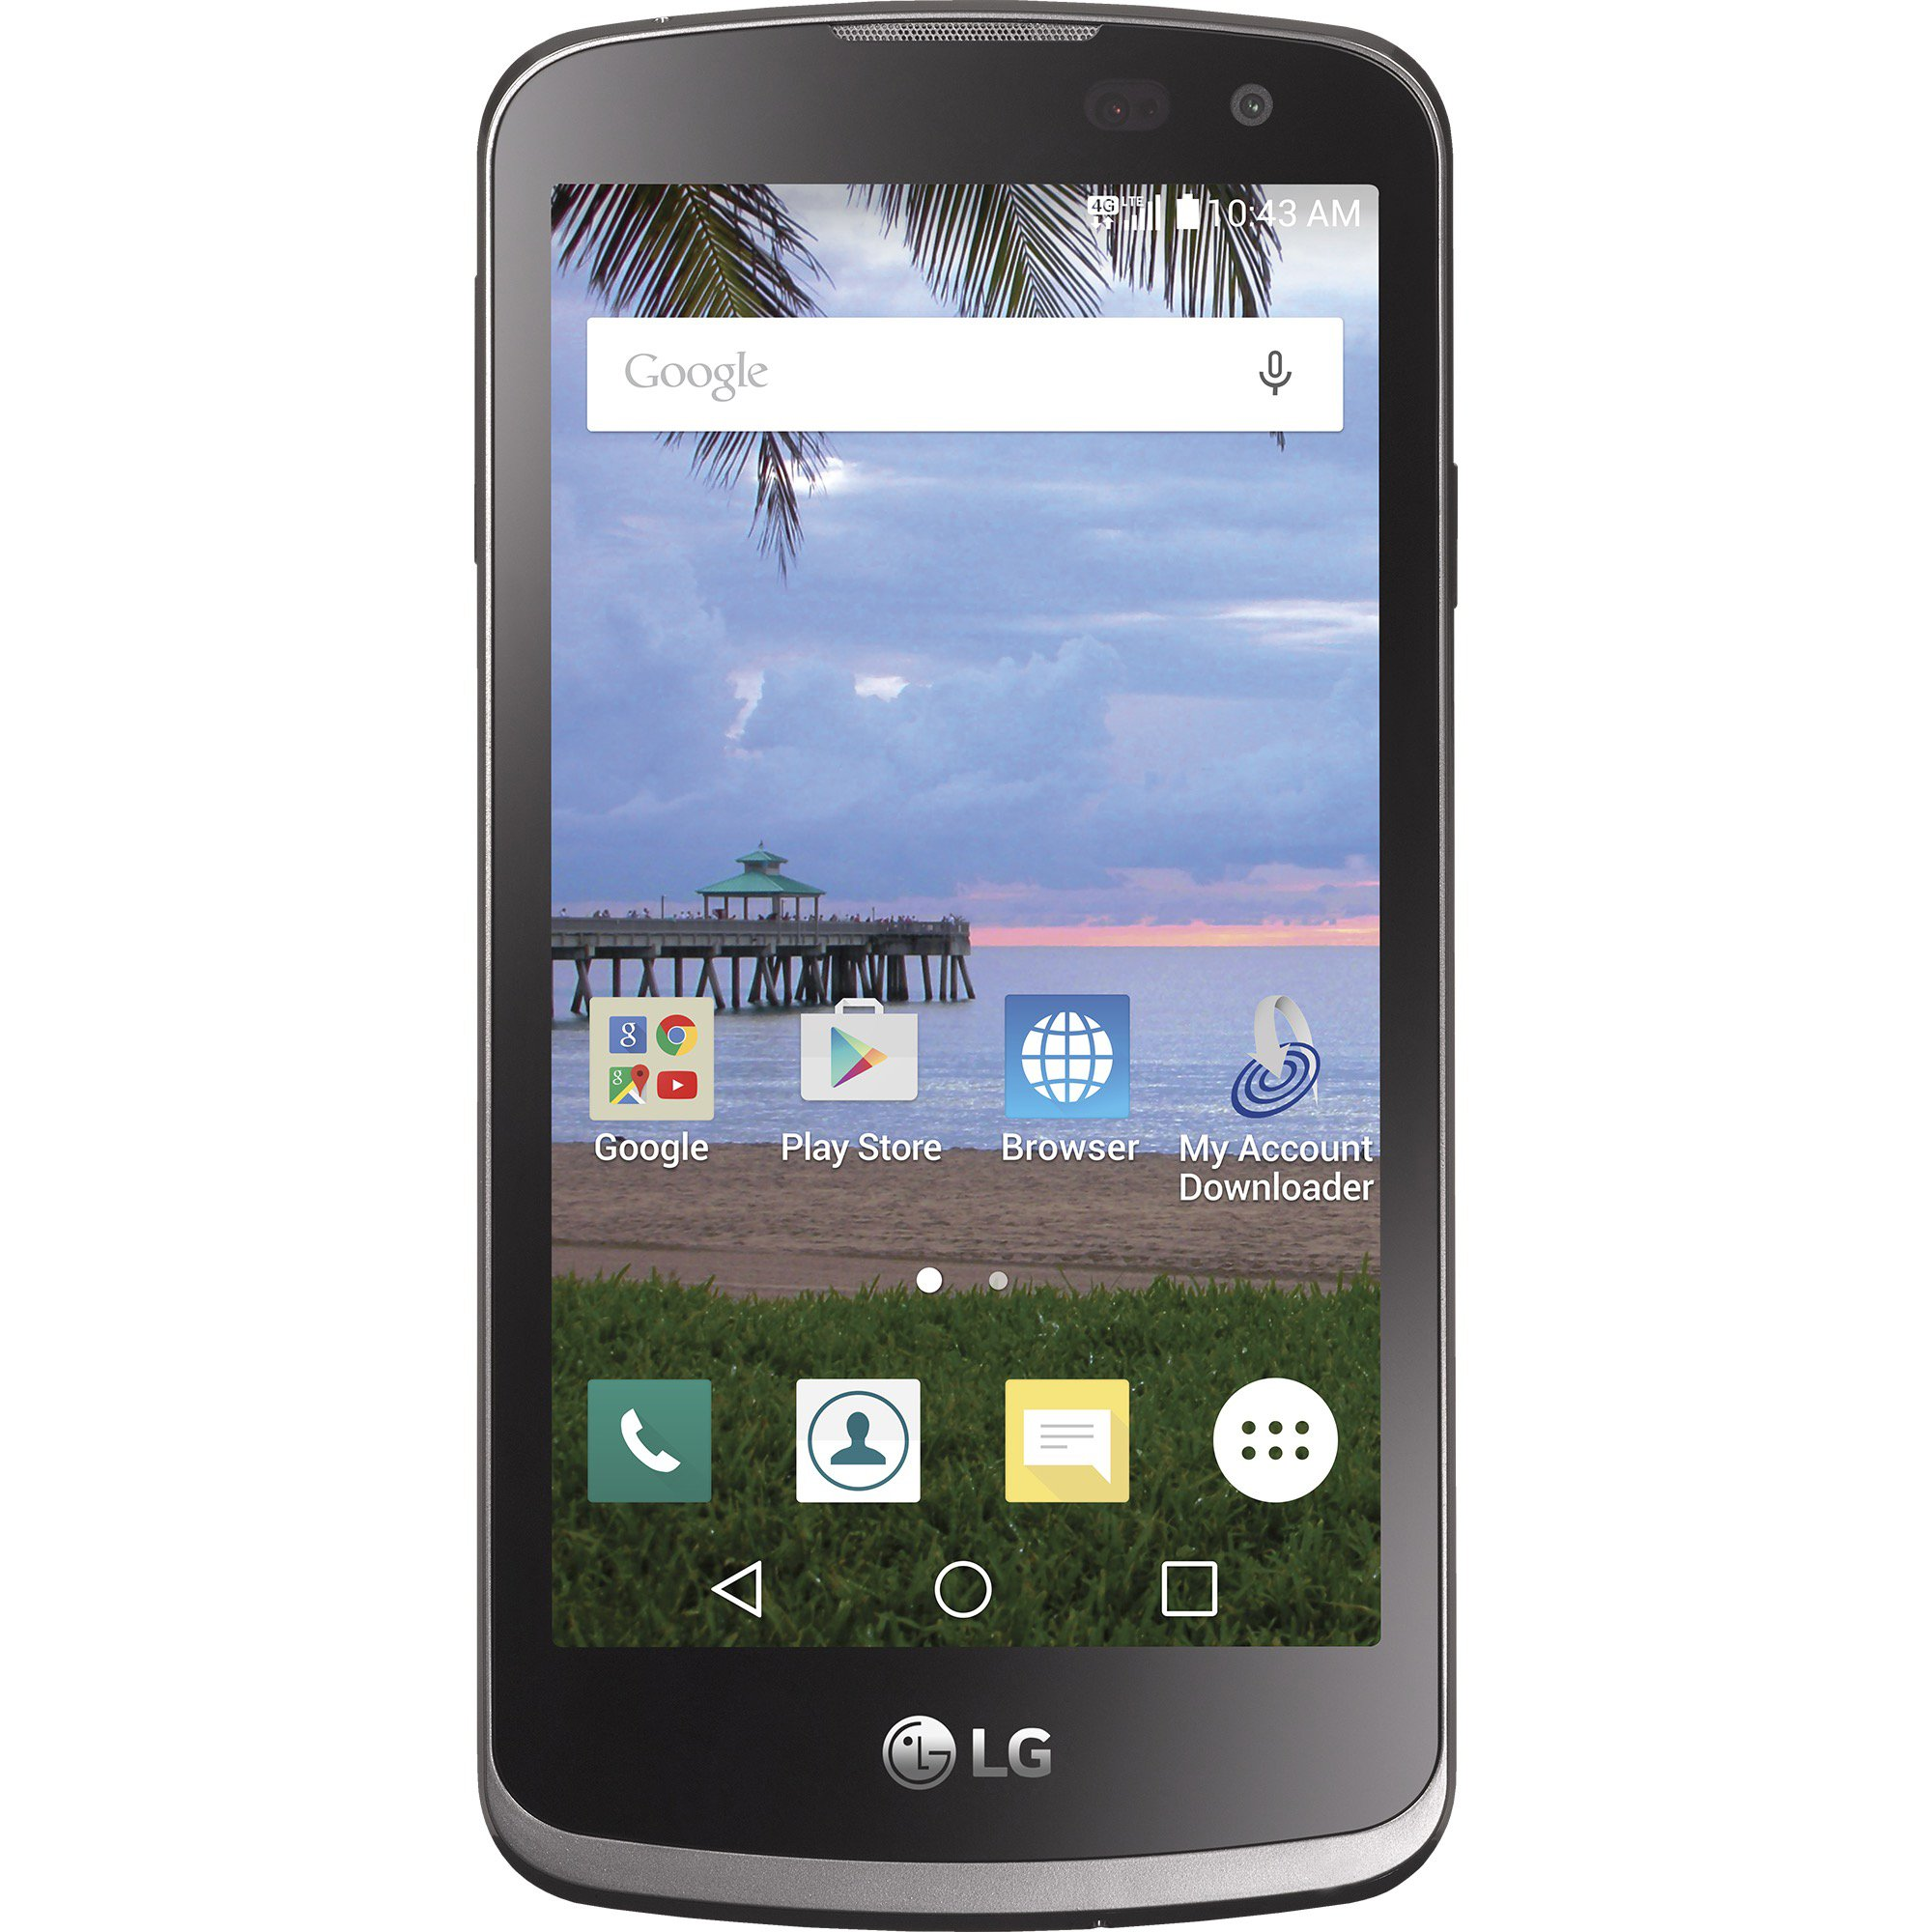 TracFone LG Rebel 4G LTE Prepaid Smartphone - CDMA Variant Handset by TracFone (Image #1)